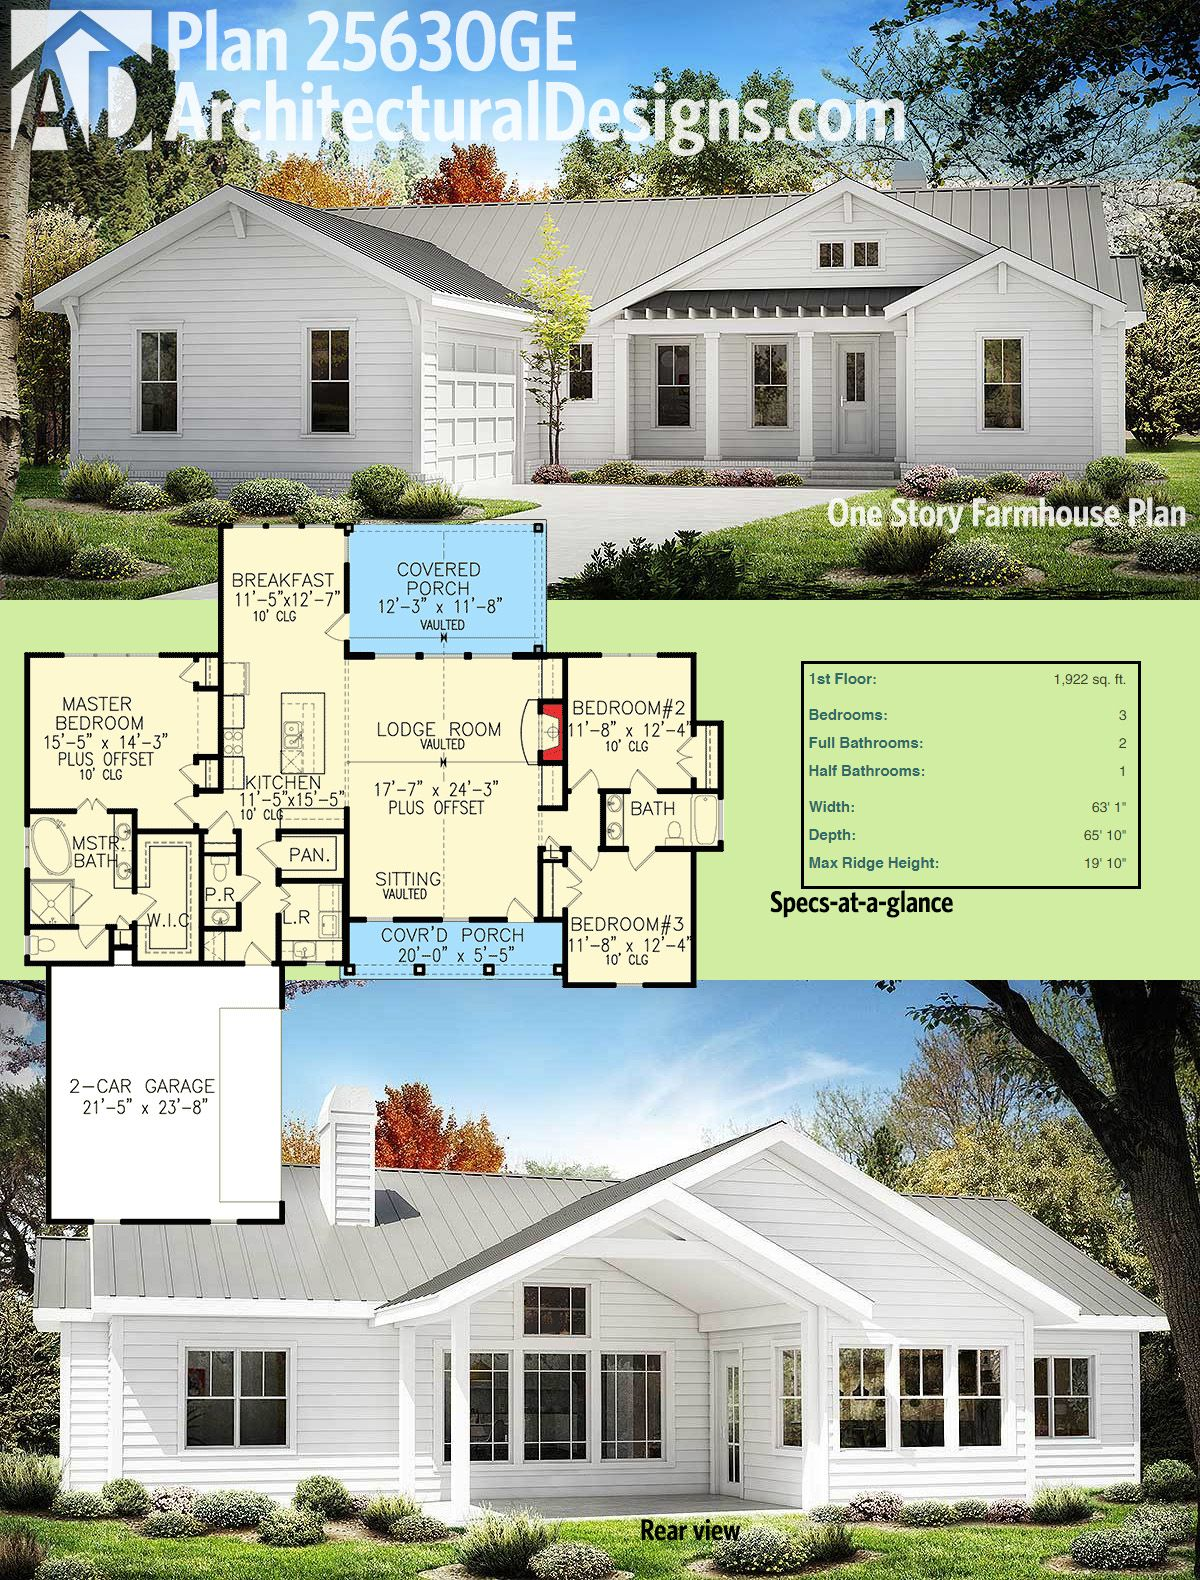 Plan 25630ge one story farmhouse plan farmhouse plans for Single story farmhouse